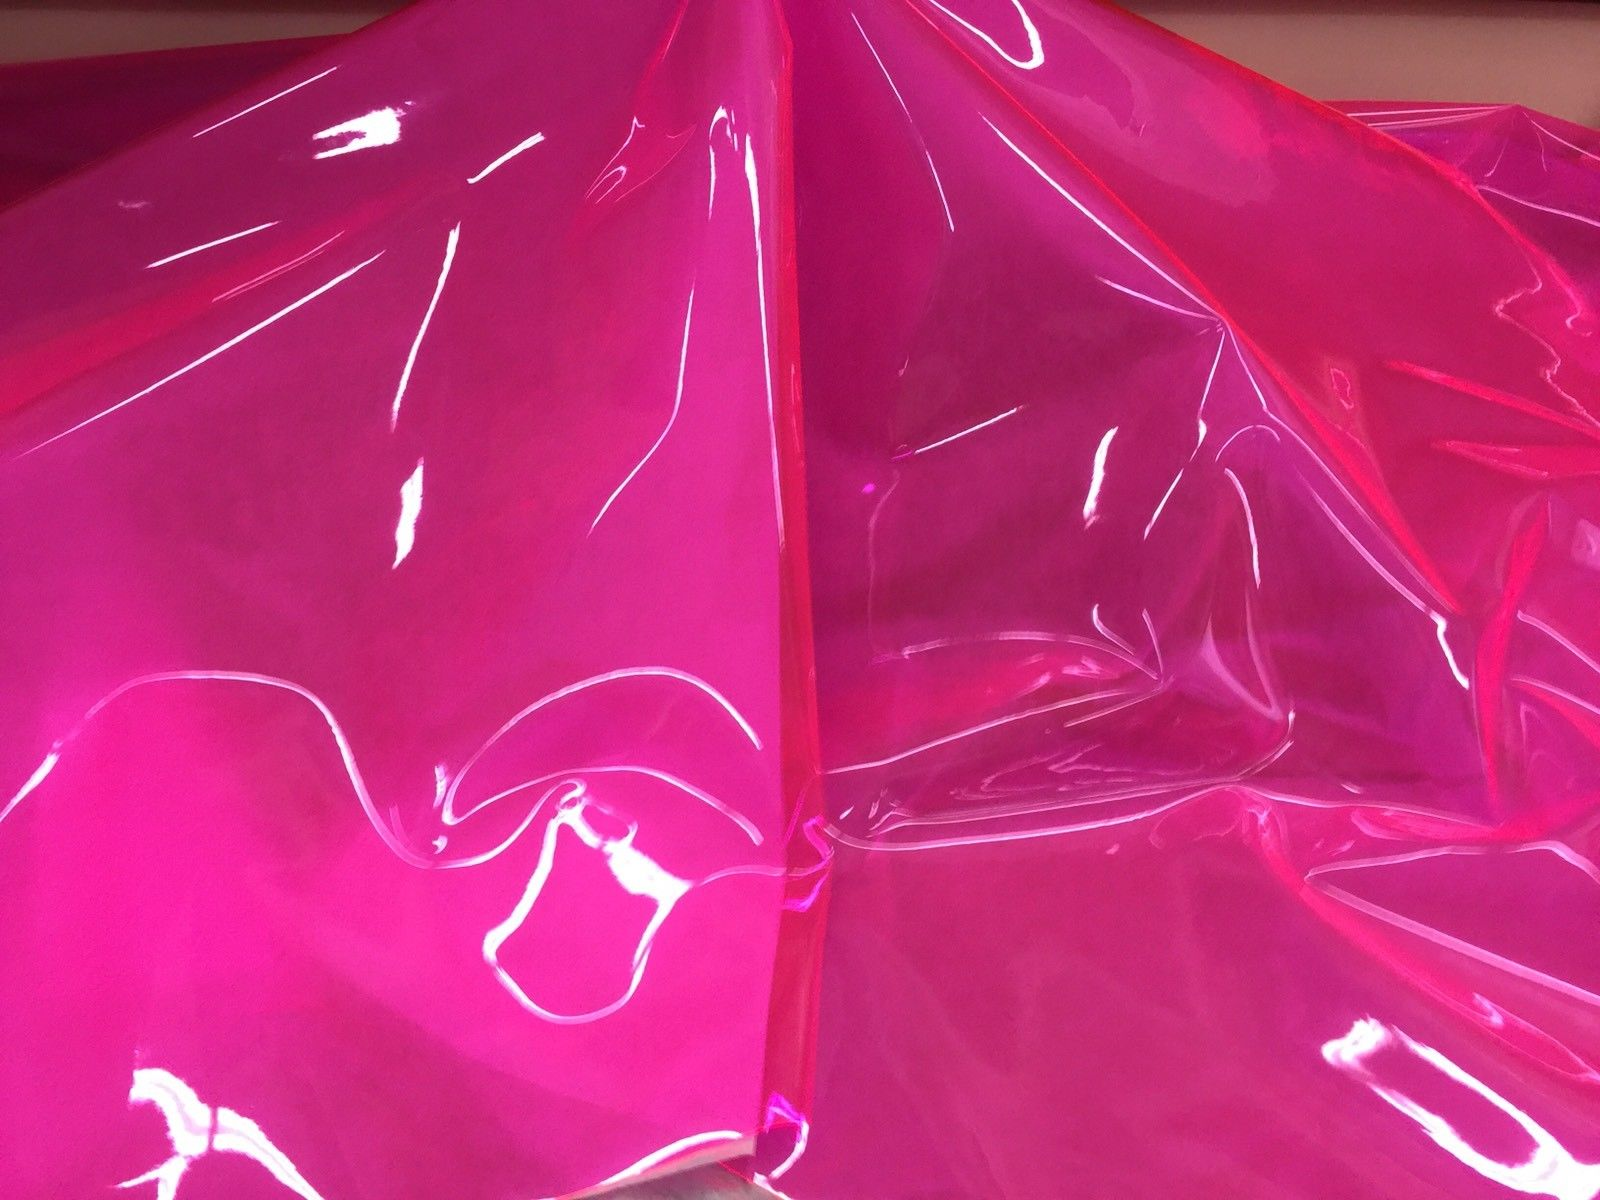 Plastic Tinted Vinyl Fuchsia 12 Gauge 54 Inch Wide Fabric sold By the Yard - KINGDOM OF FABRICS